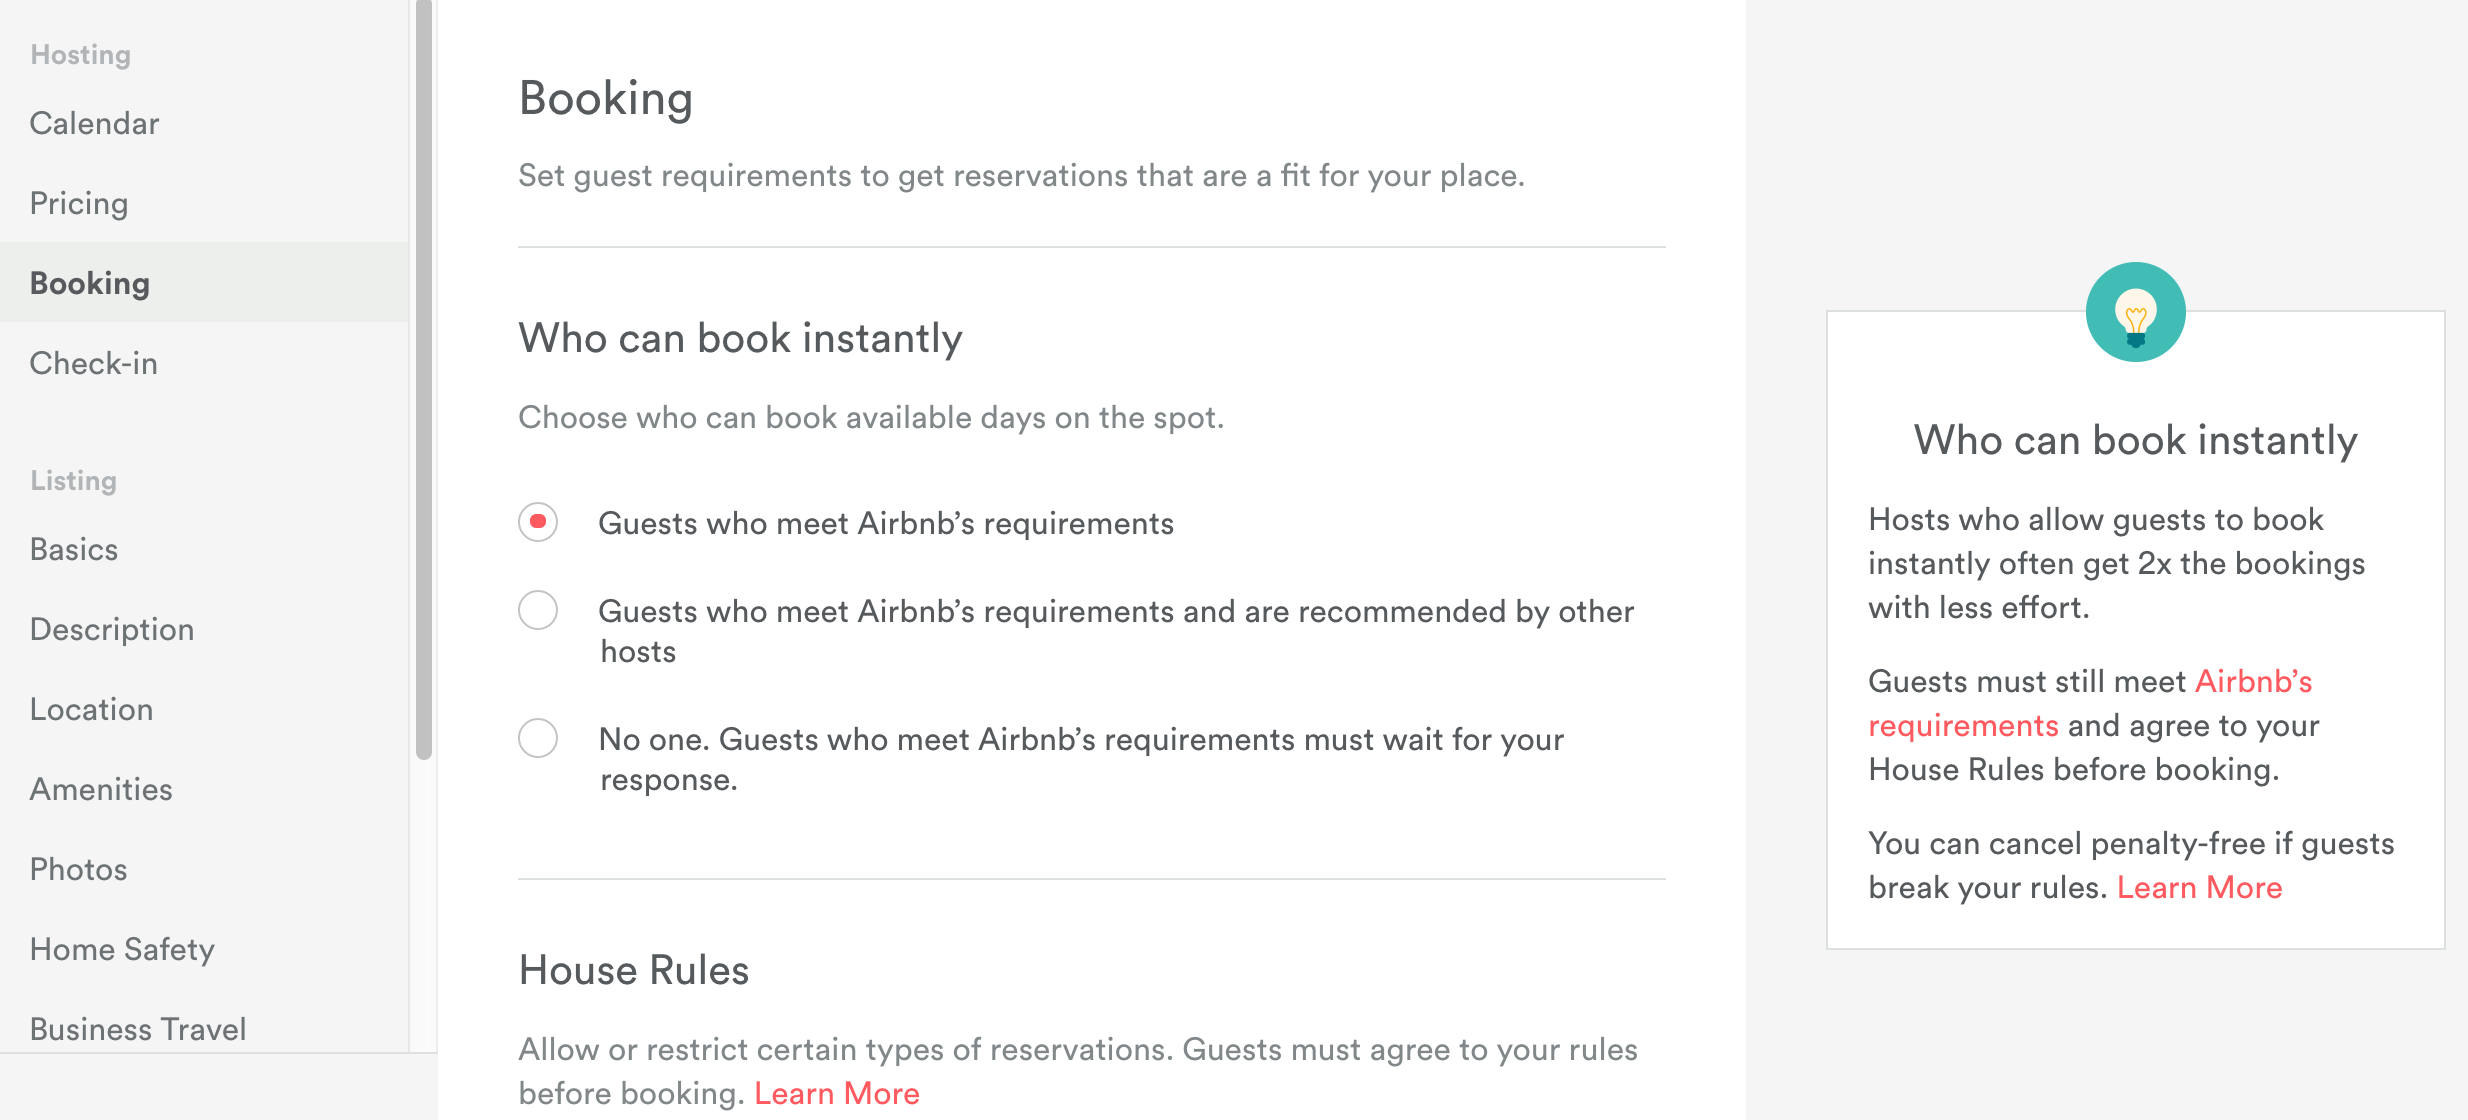 How to disable insta book? - Airbnb Community